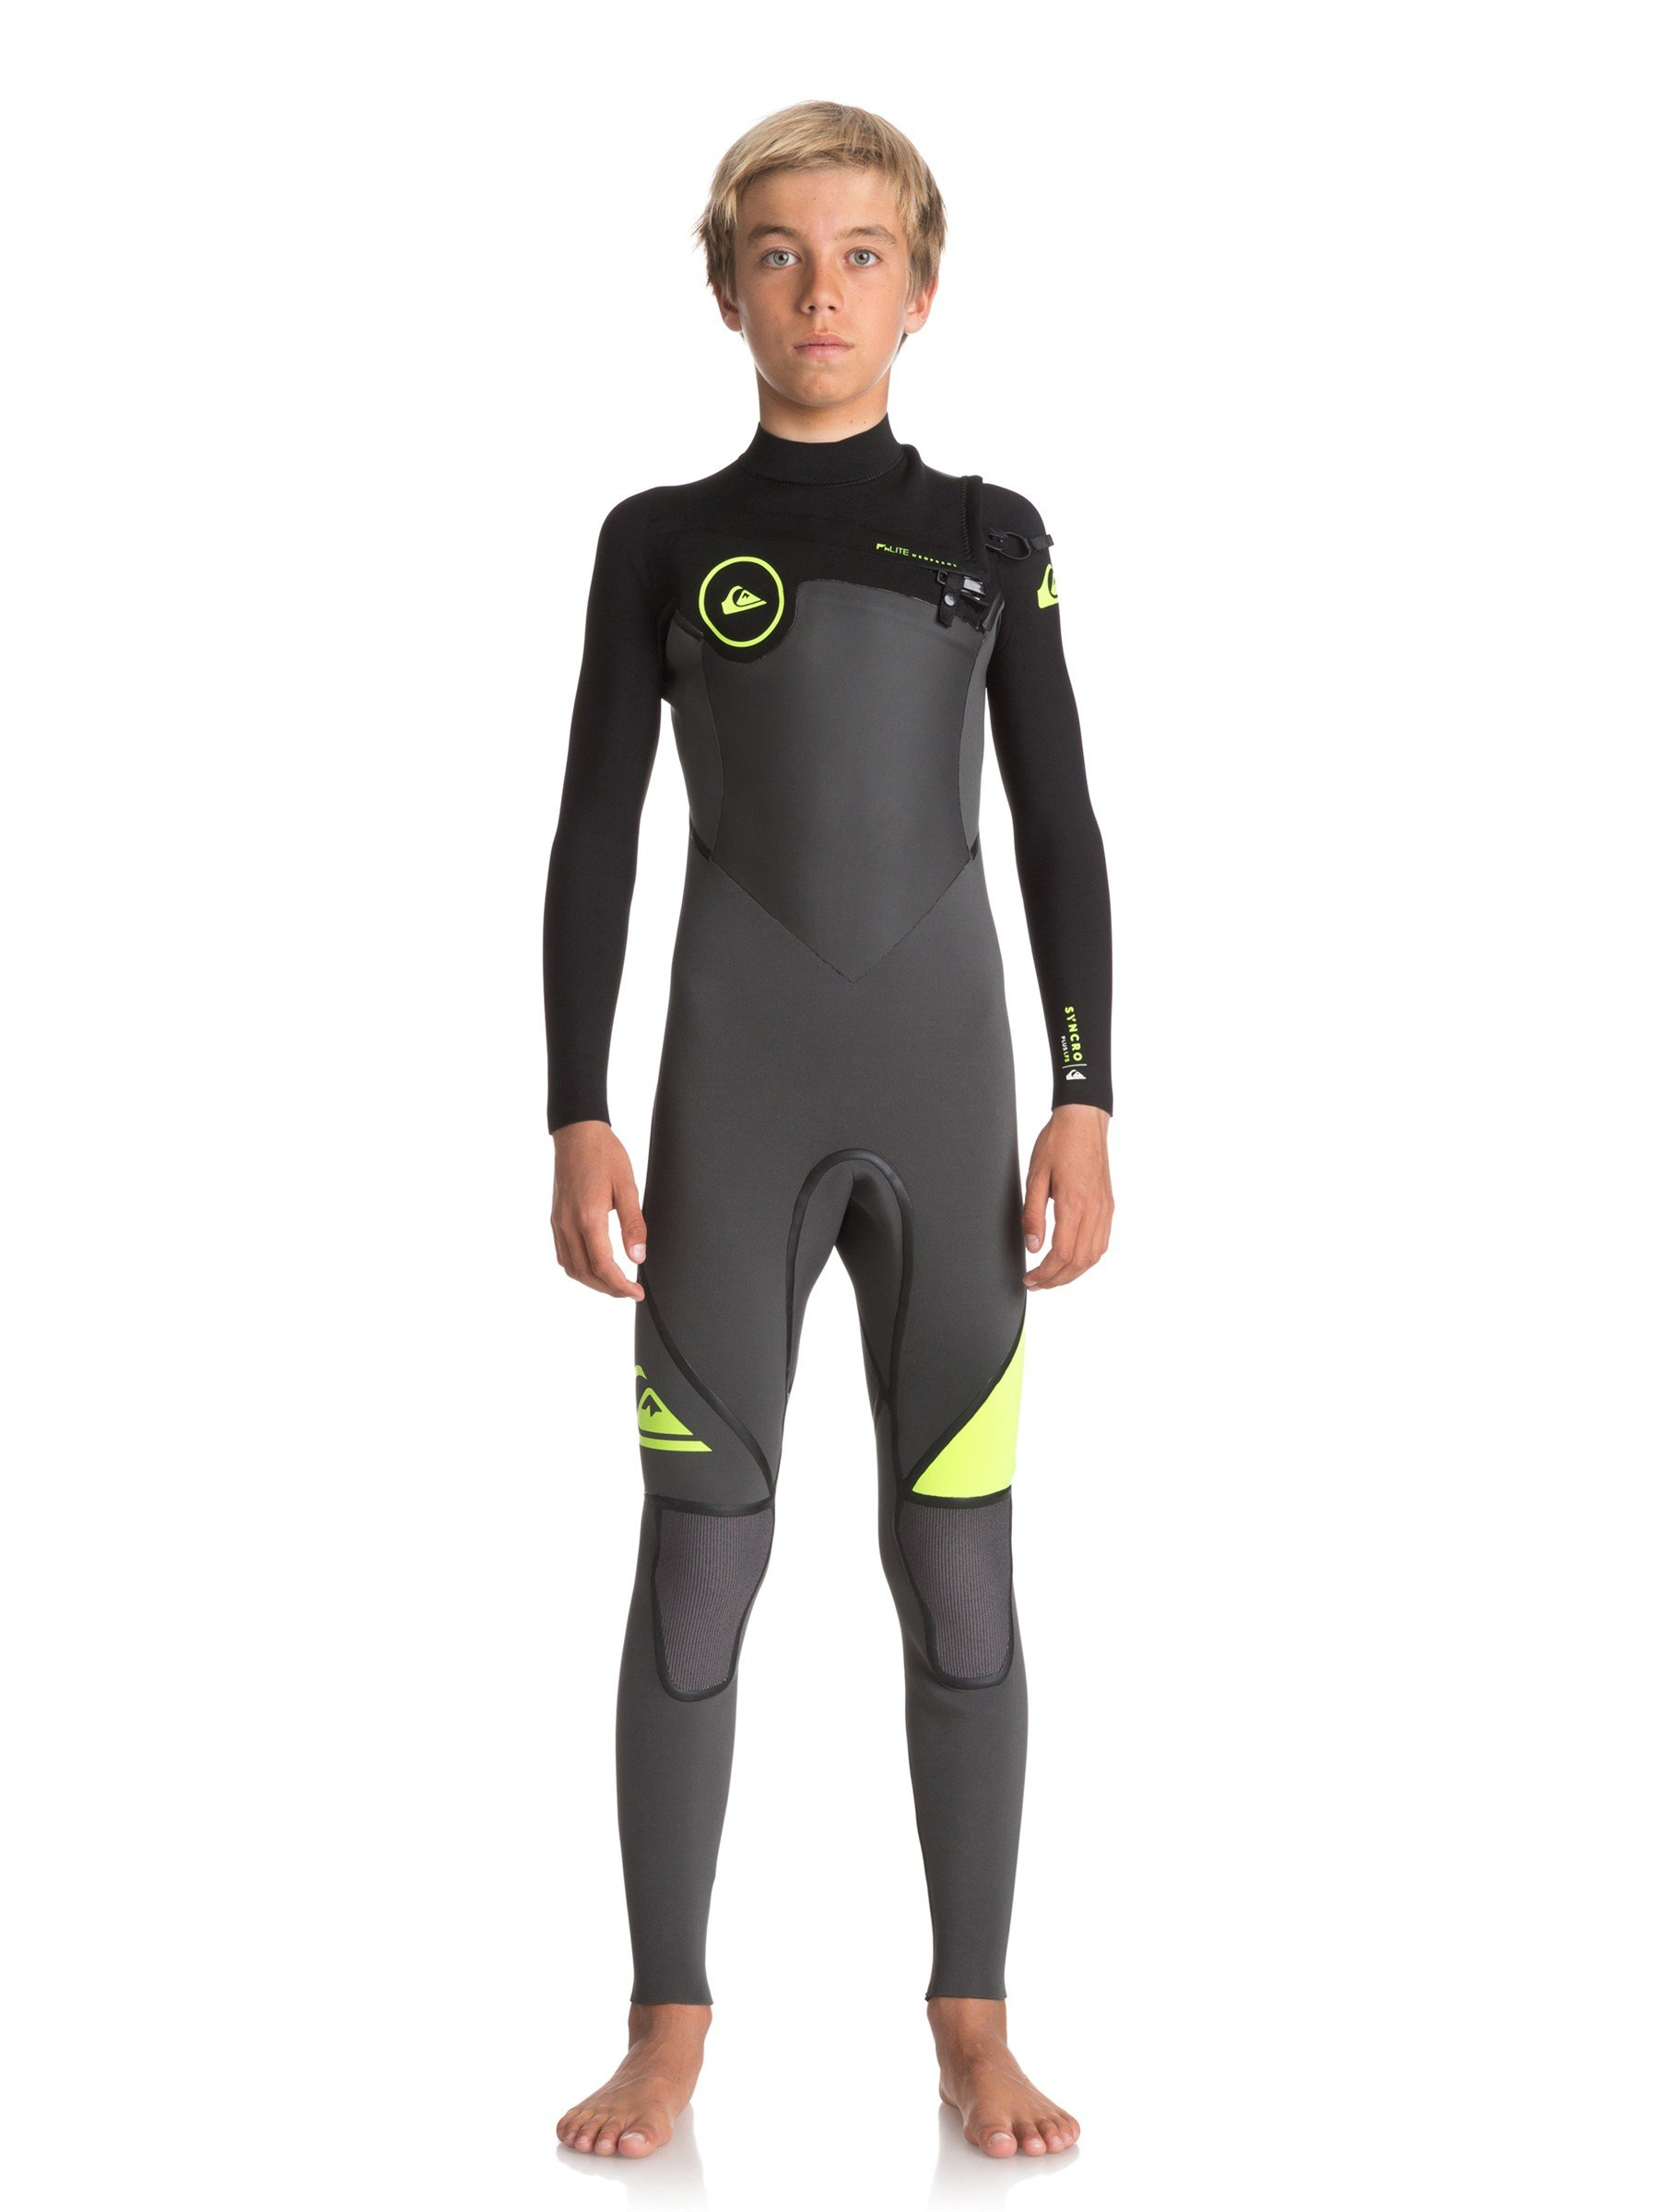 Quiksilver - Boys 4/3 Syncro+ Fullsuit, Size: 14, Color: Jet Black/ Black/ Safety Yello by Quiksilver